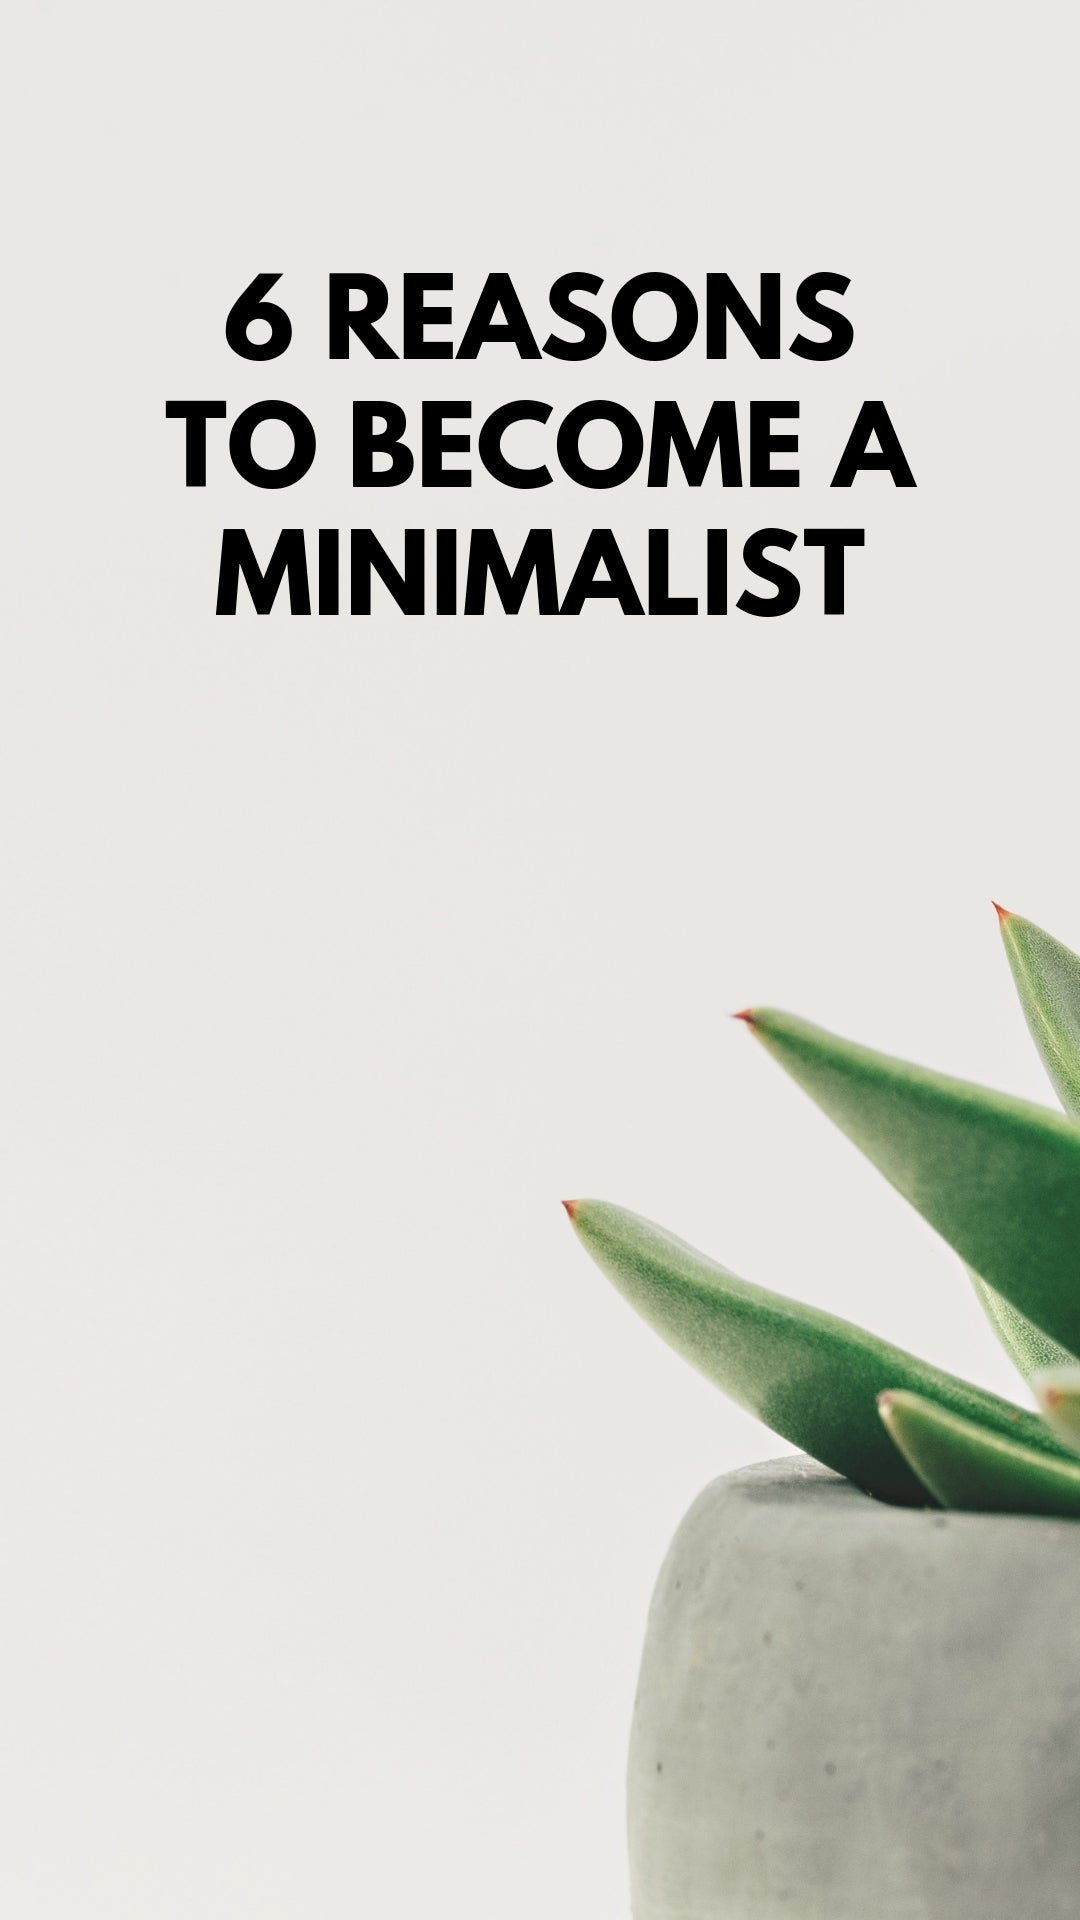 6 REASONS TO BECOME A MINIMALIST #minimalist #minimalism